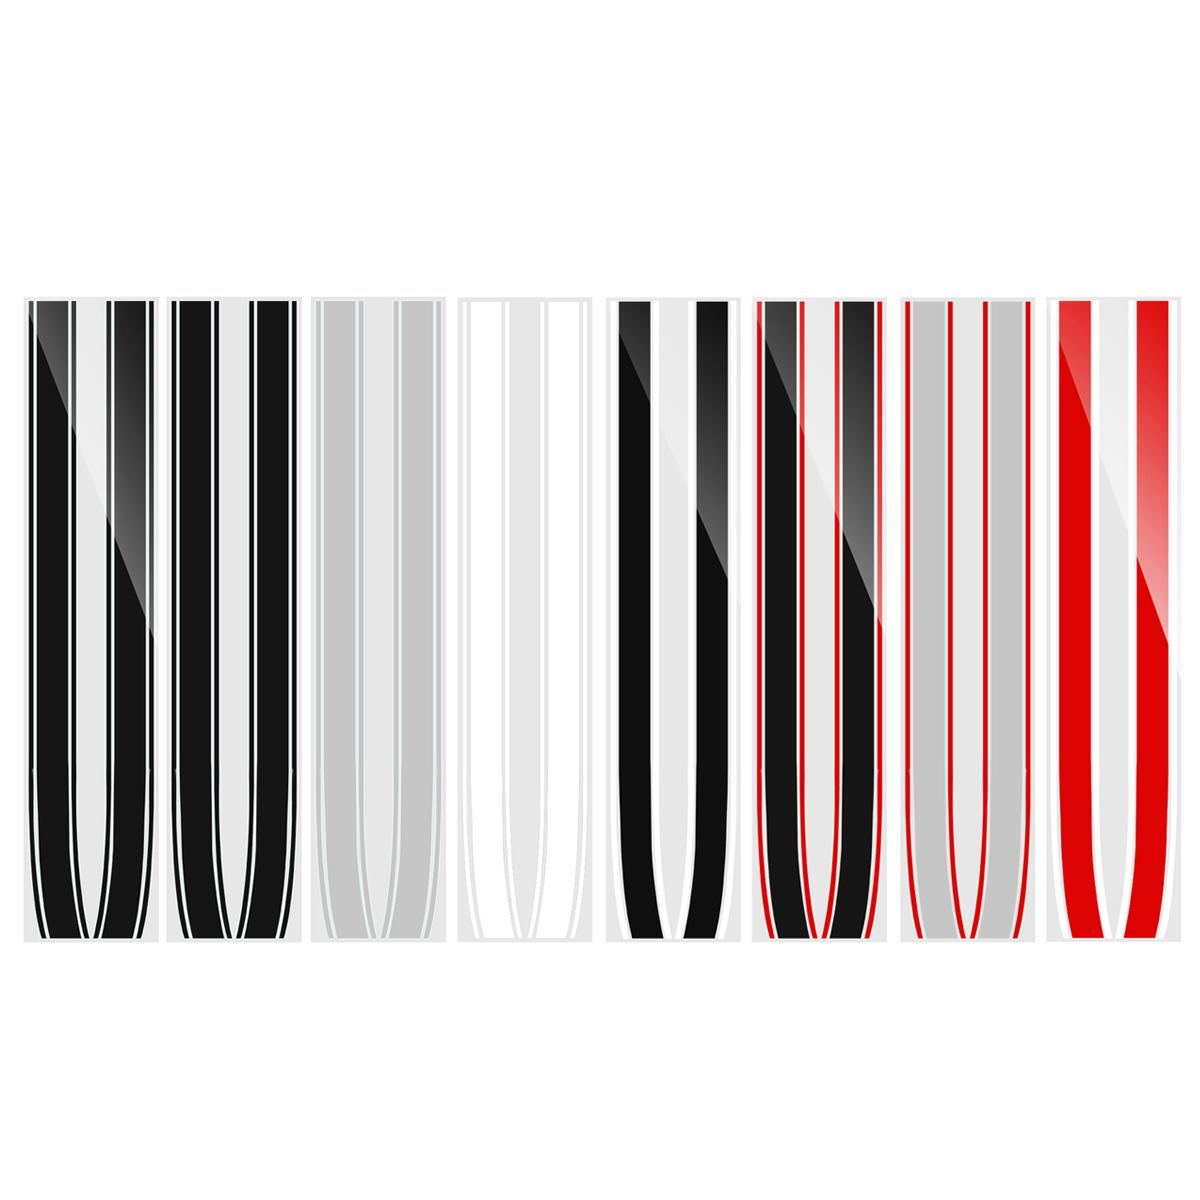 Engine Bonnet Hood Trunk Stripe Trim Sticker Line For Mini Cooper Bonnet Stripes R50 R52 R53 R55 R56 R57 For Mini Cooper S